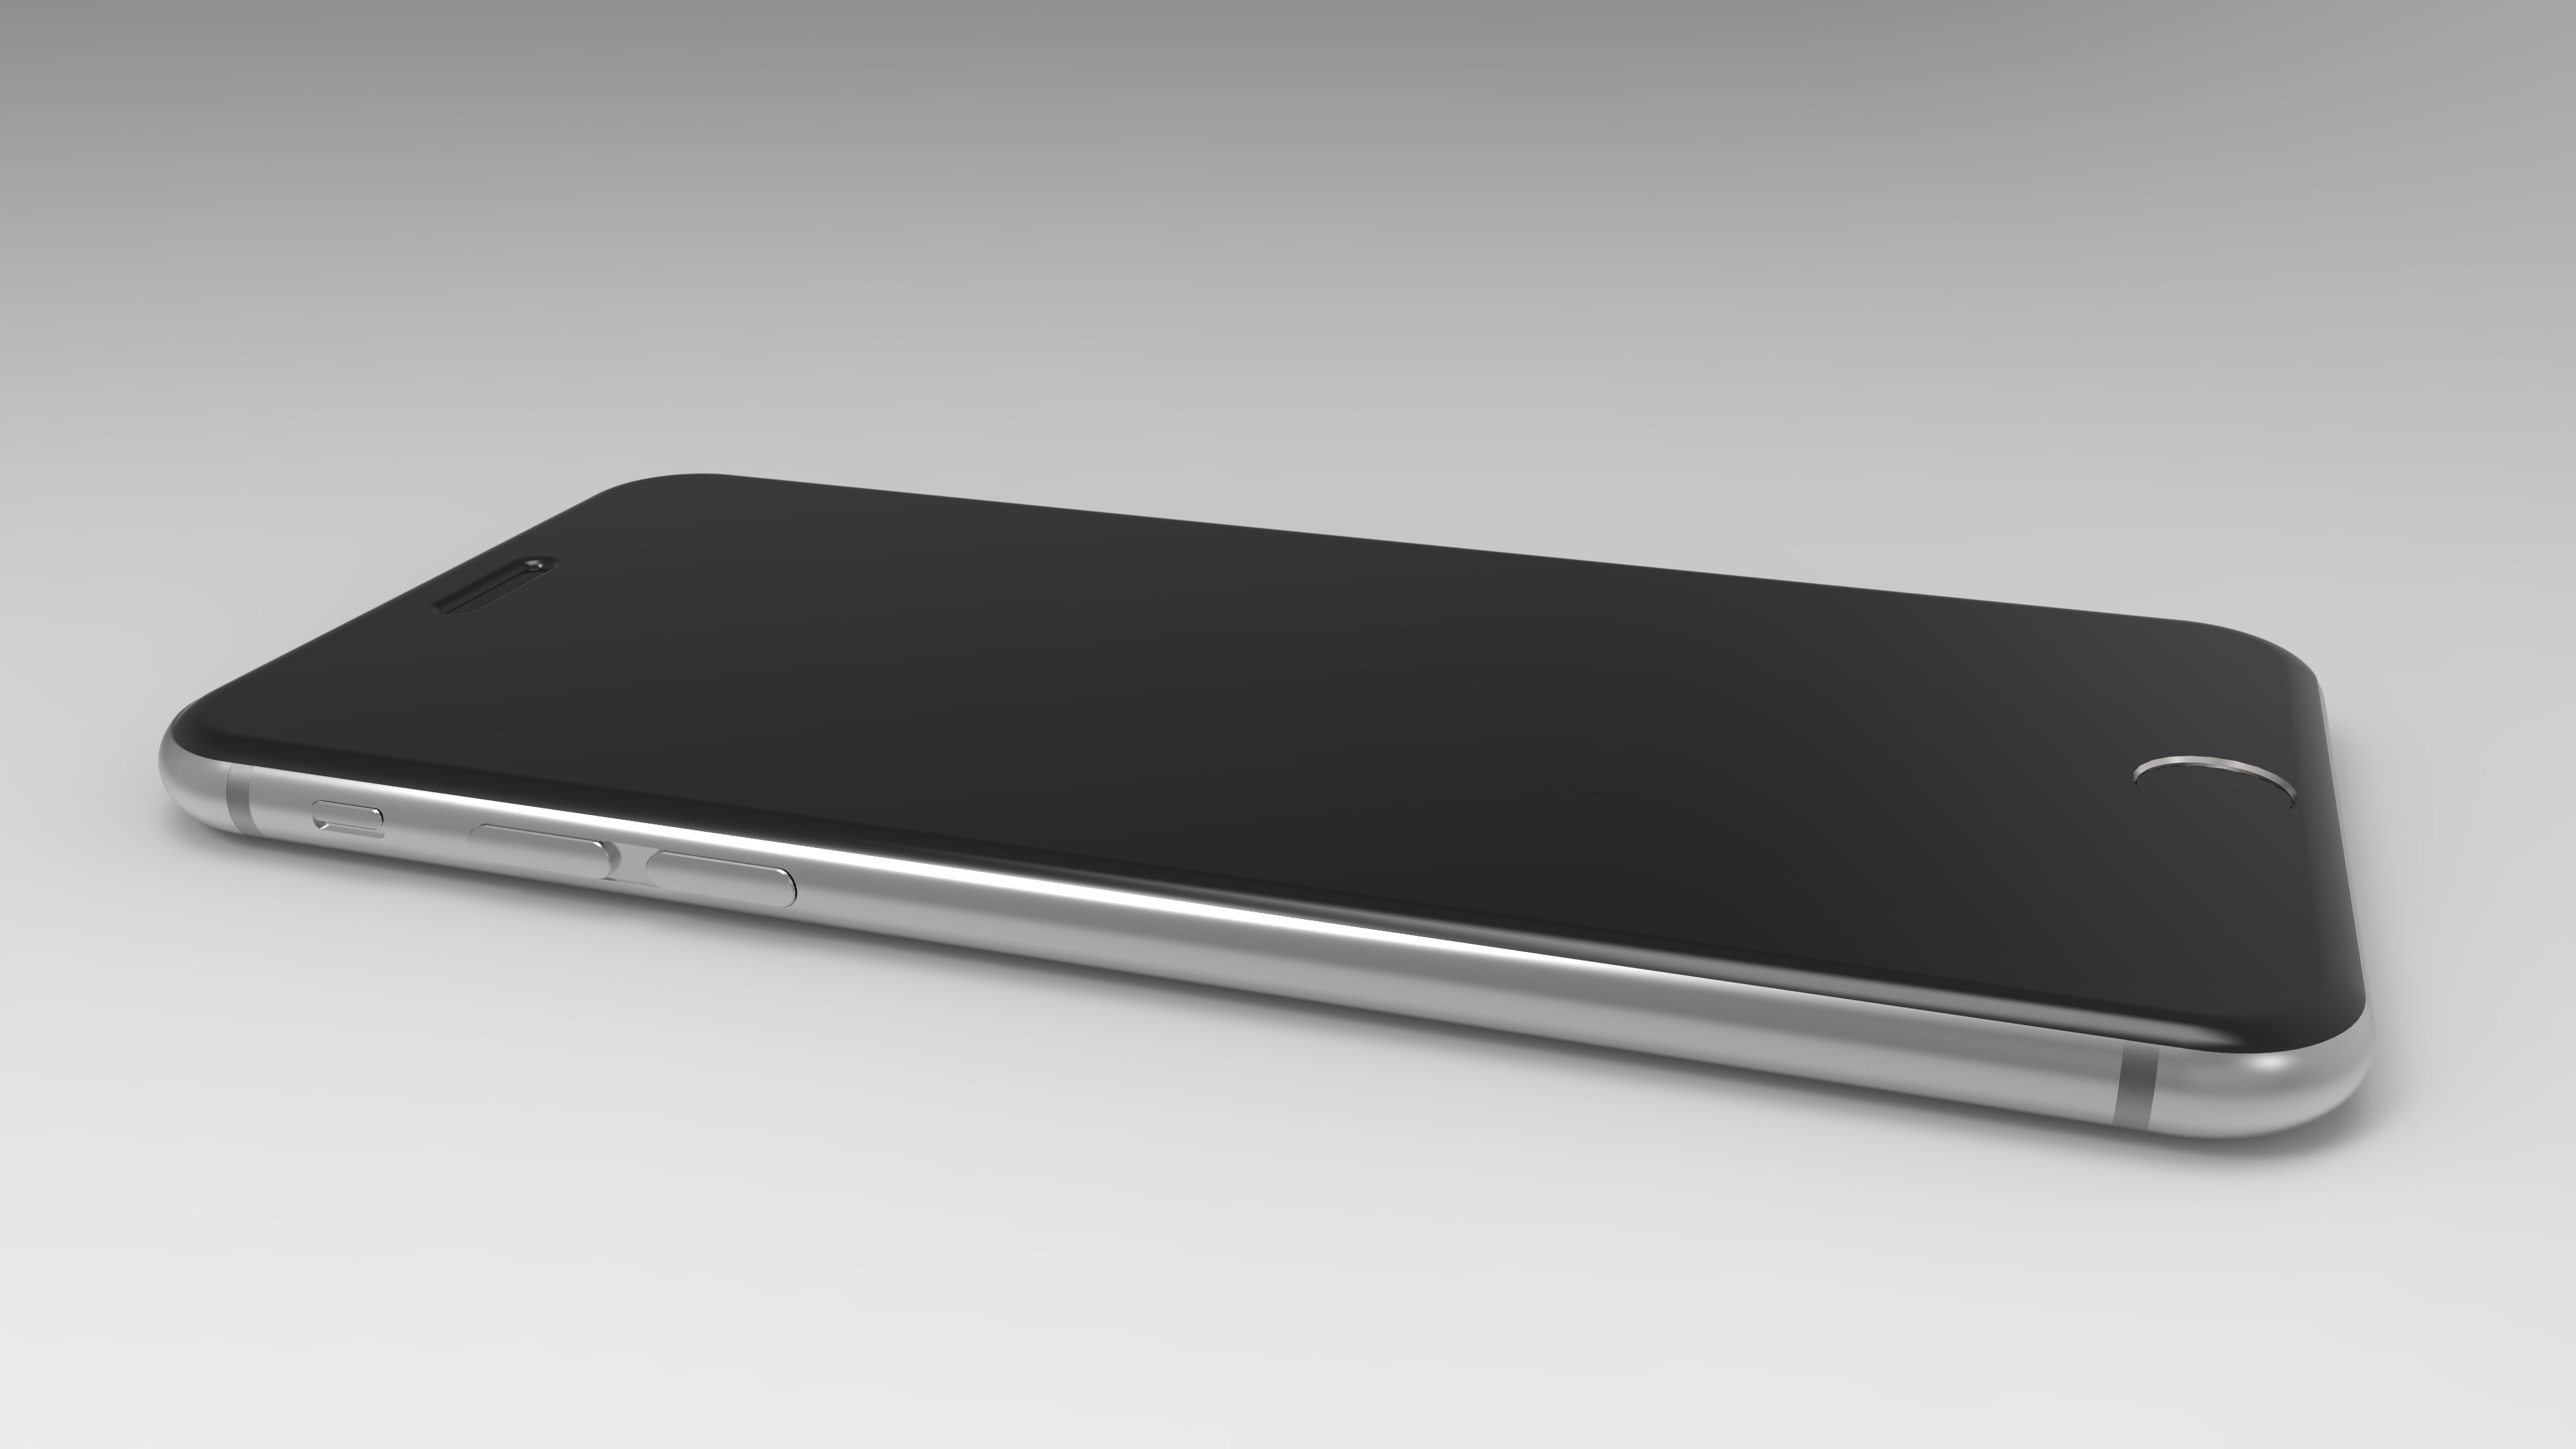 3840x2160 Download 3D model of iPhone 6, iPhone 6 Plus, iPhone 6s, iPhone 6 Plus and  more | 4K Side